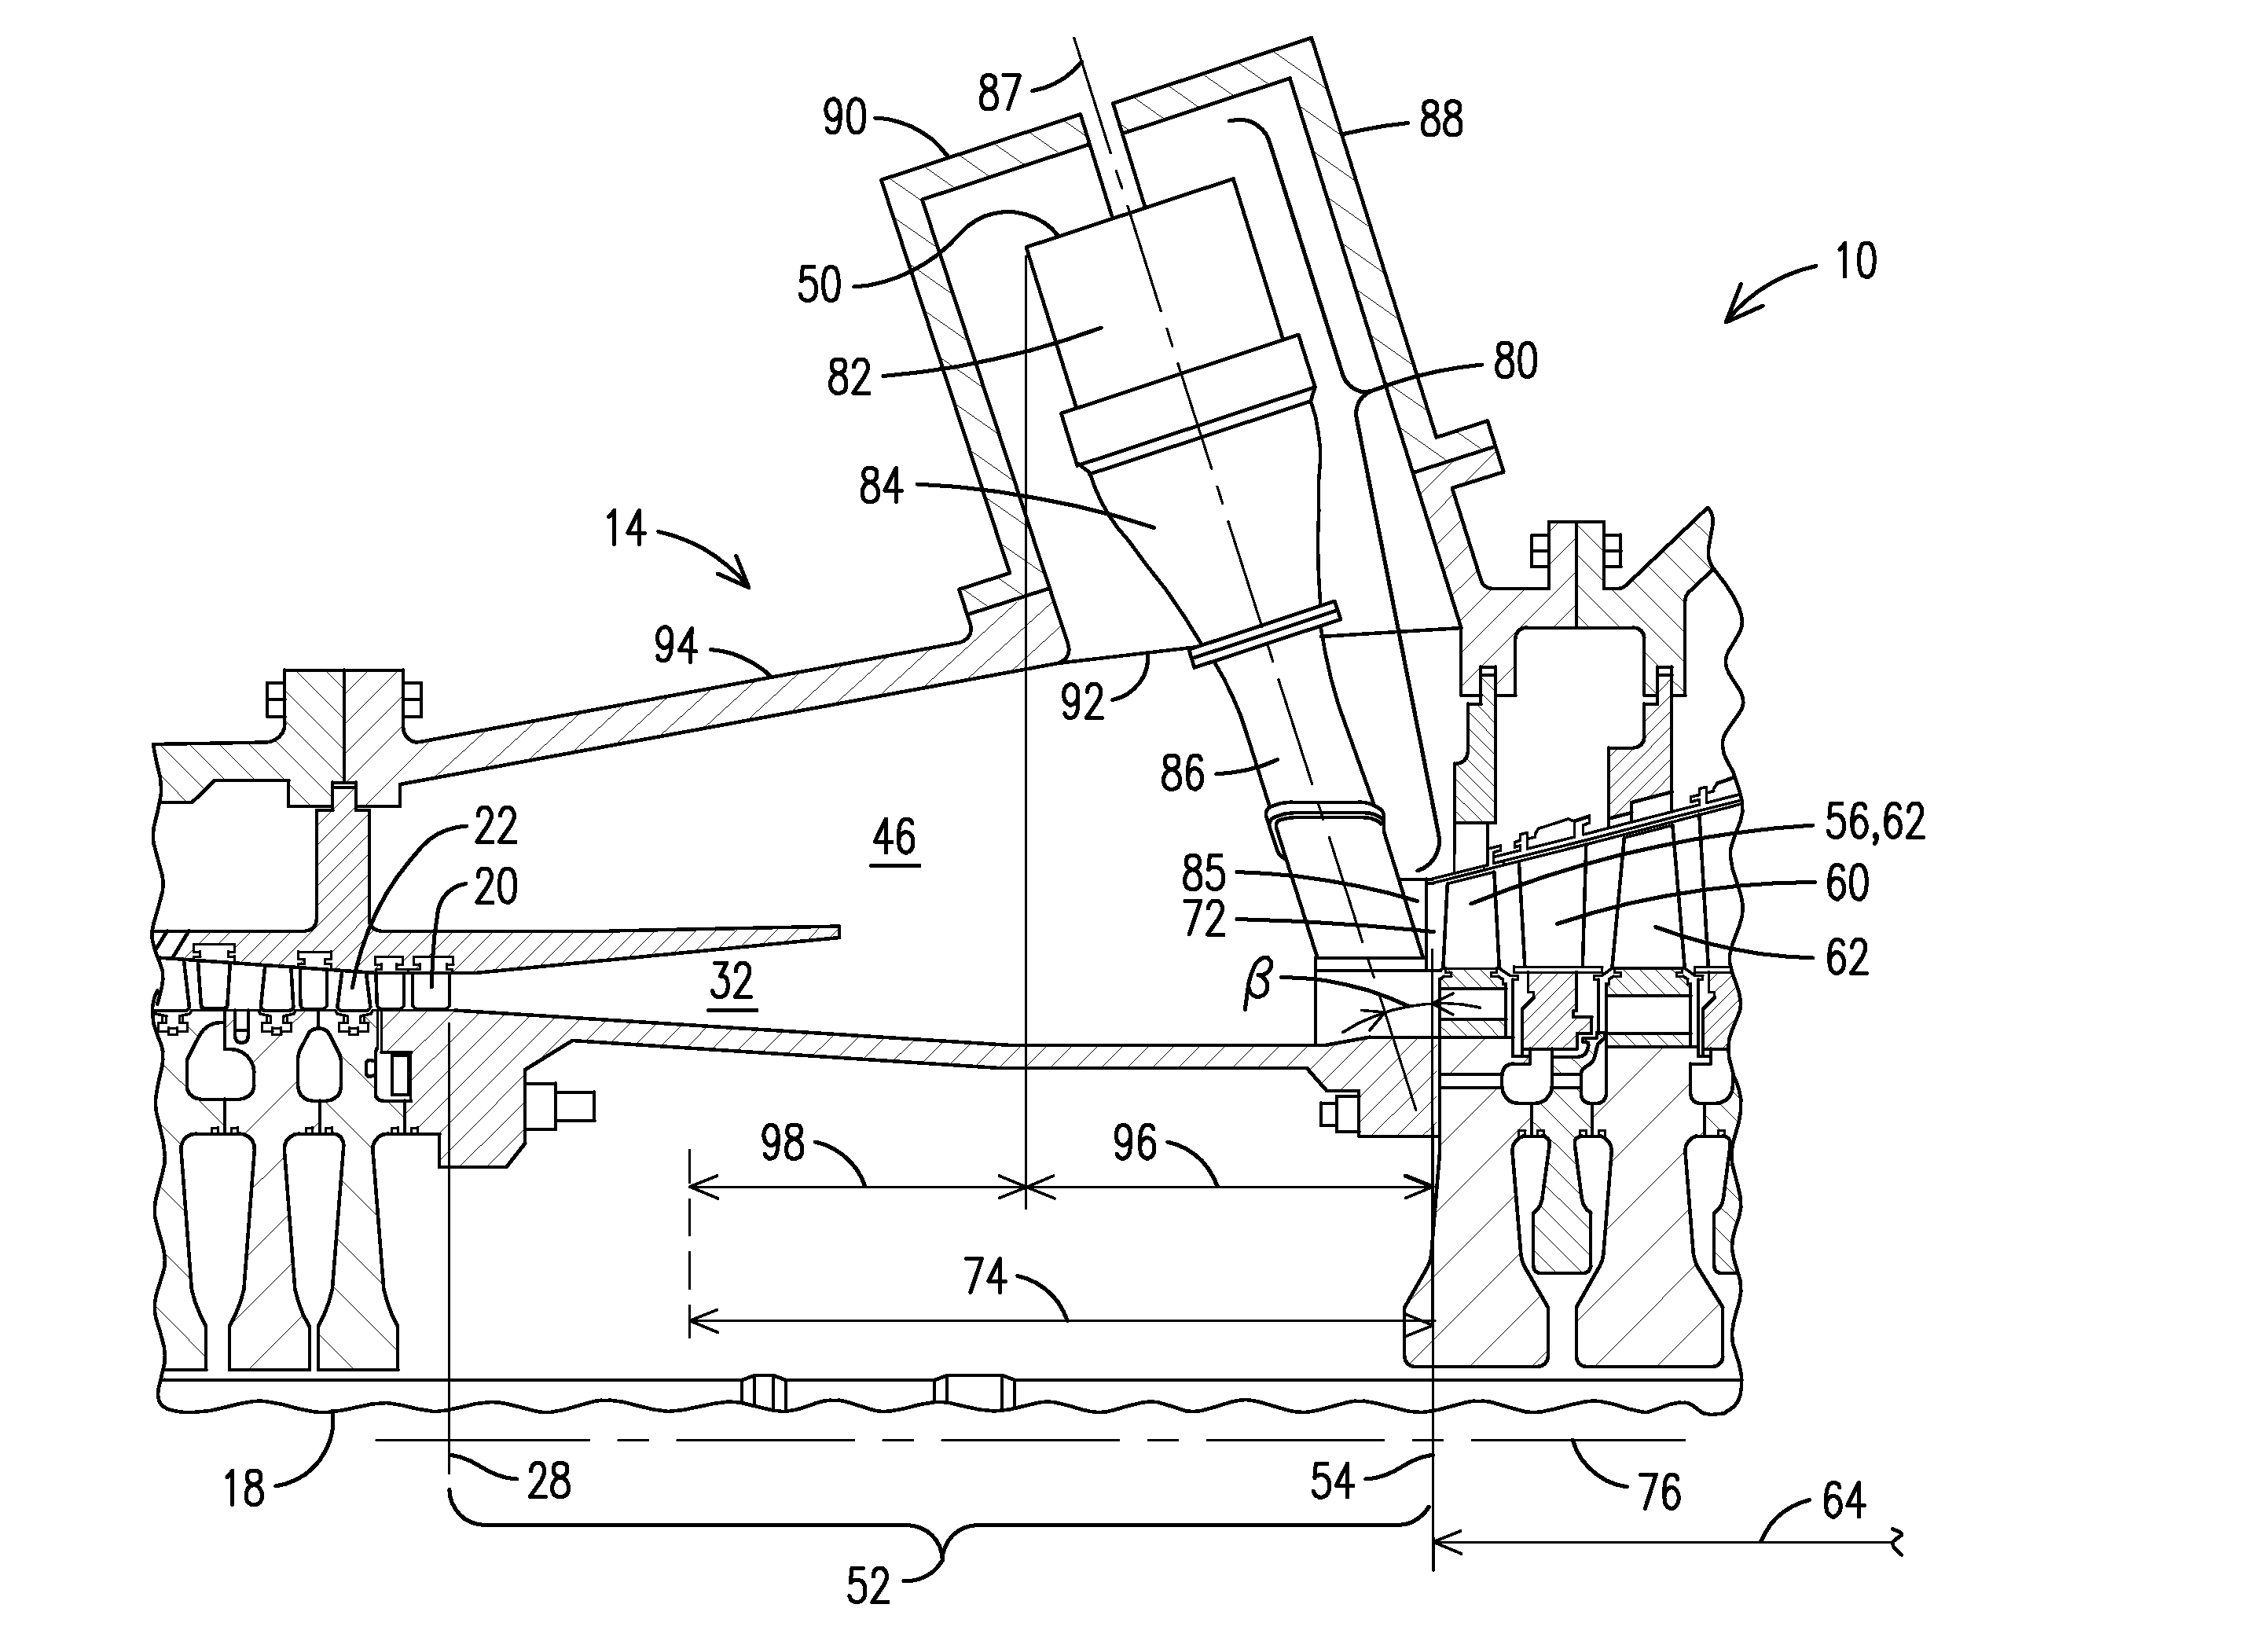 Patent US Gas turbine engine with radial diffuser and